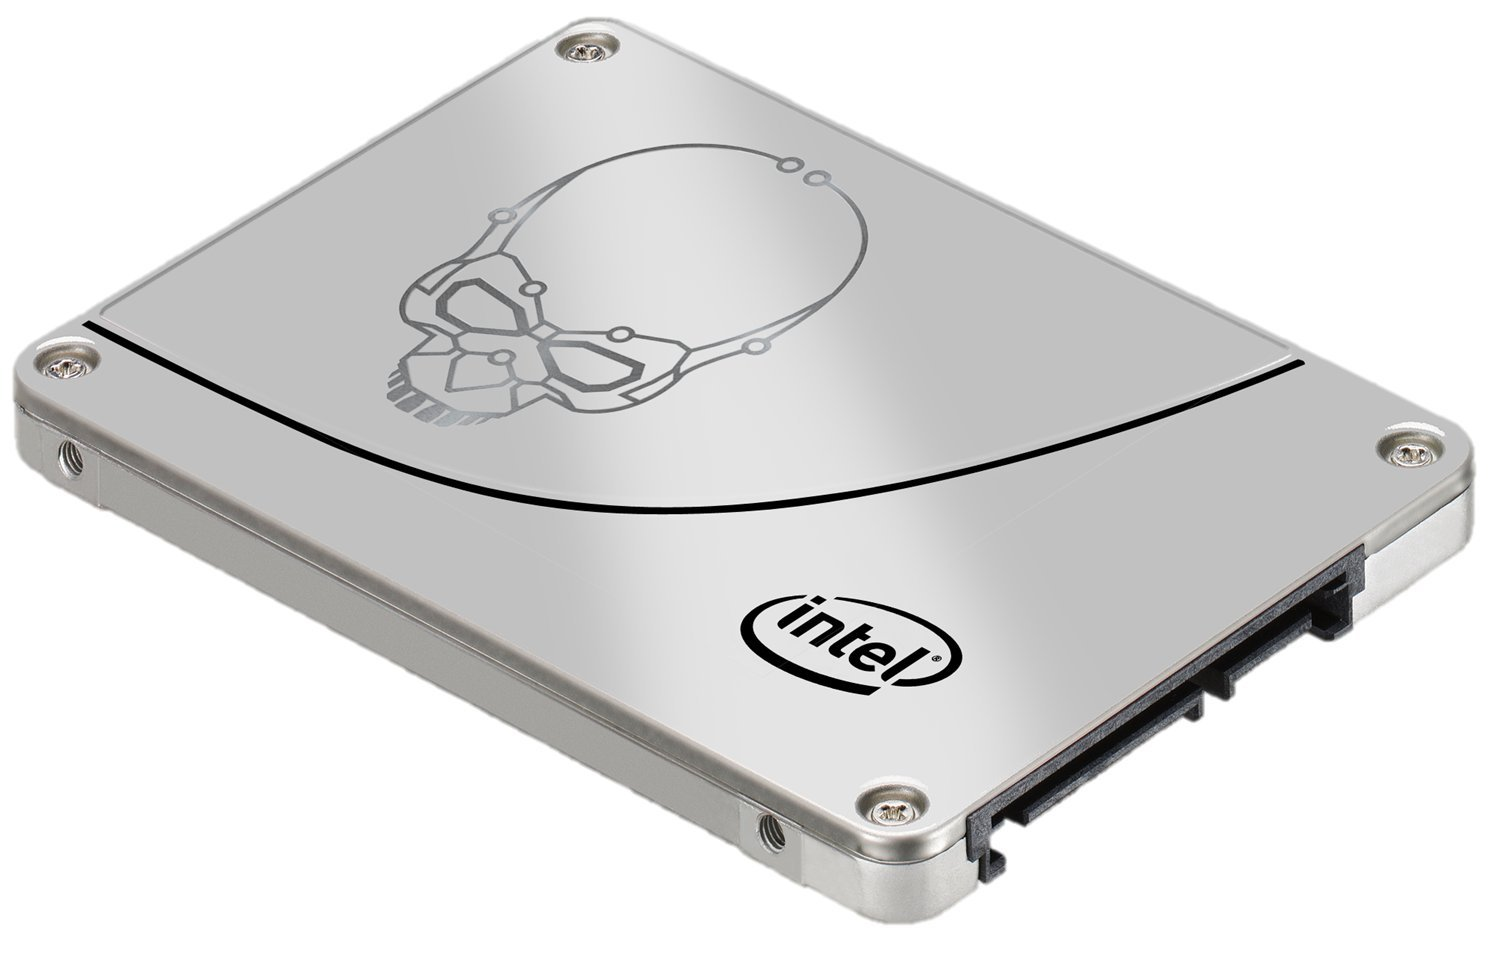 Intel 730 SERIES 2.5-Inch 480 GB SSD